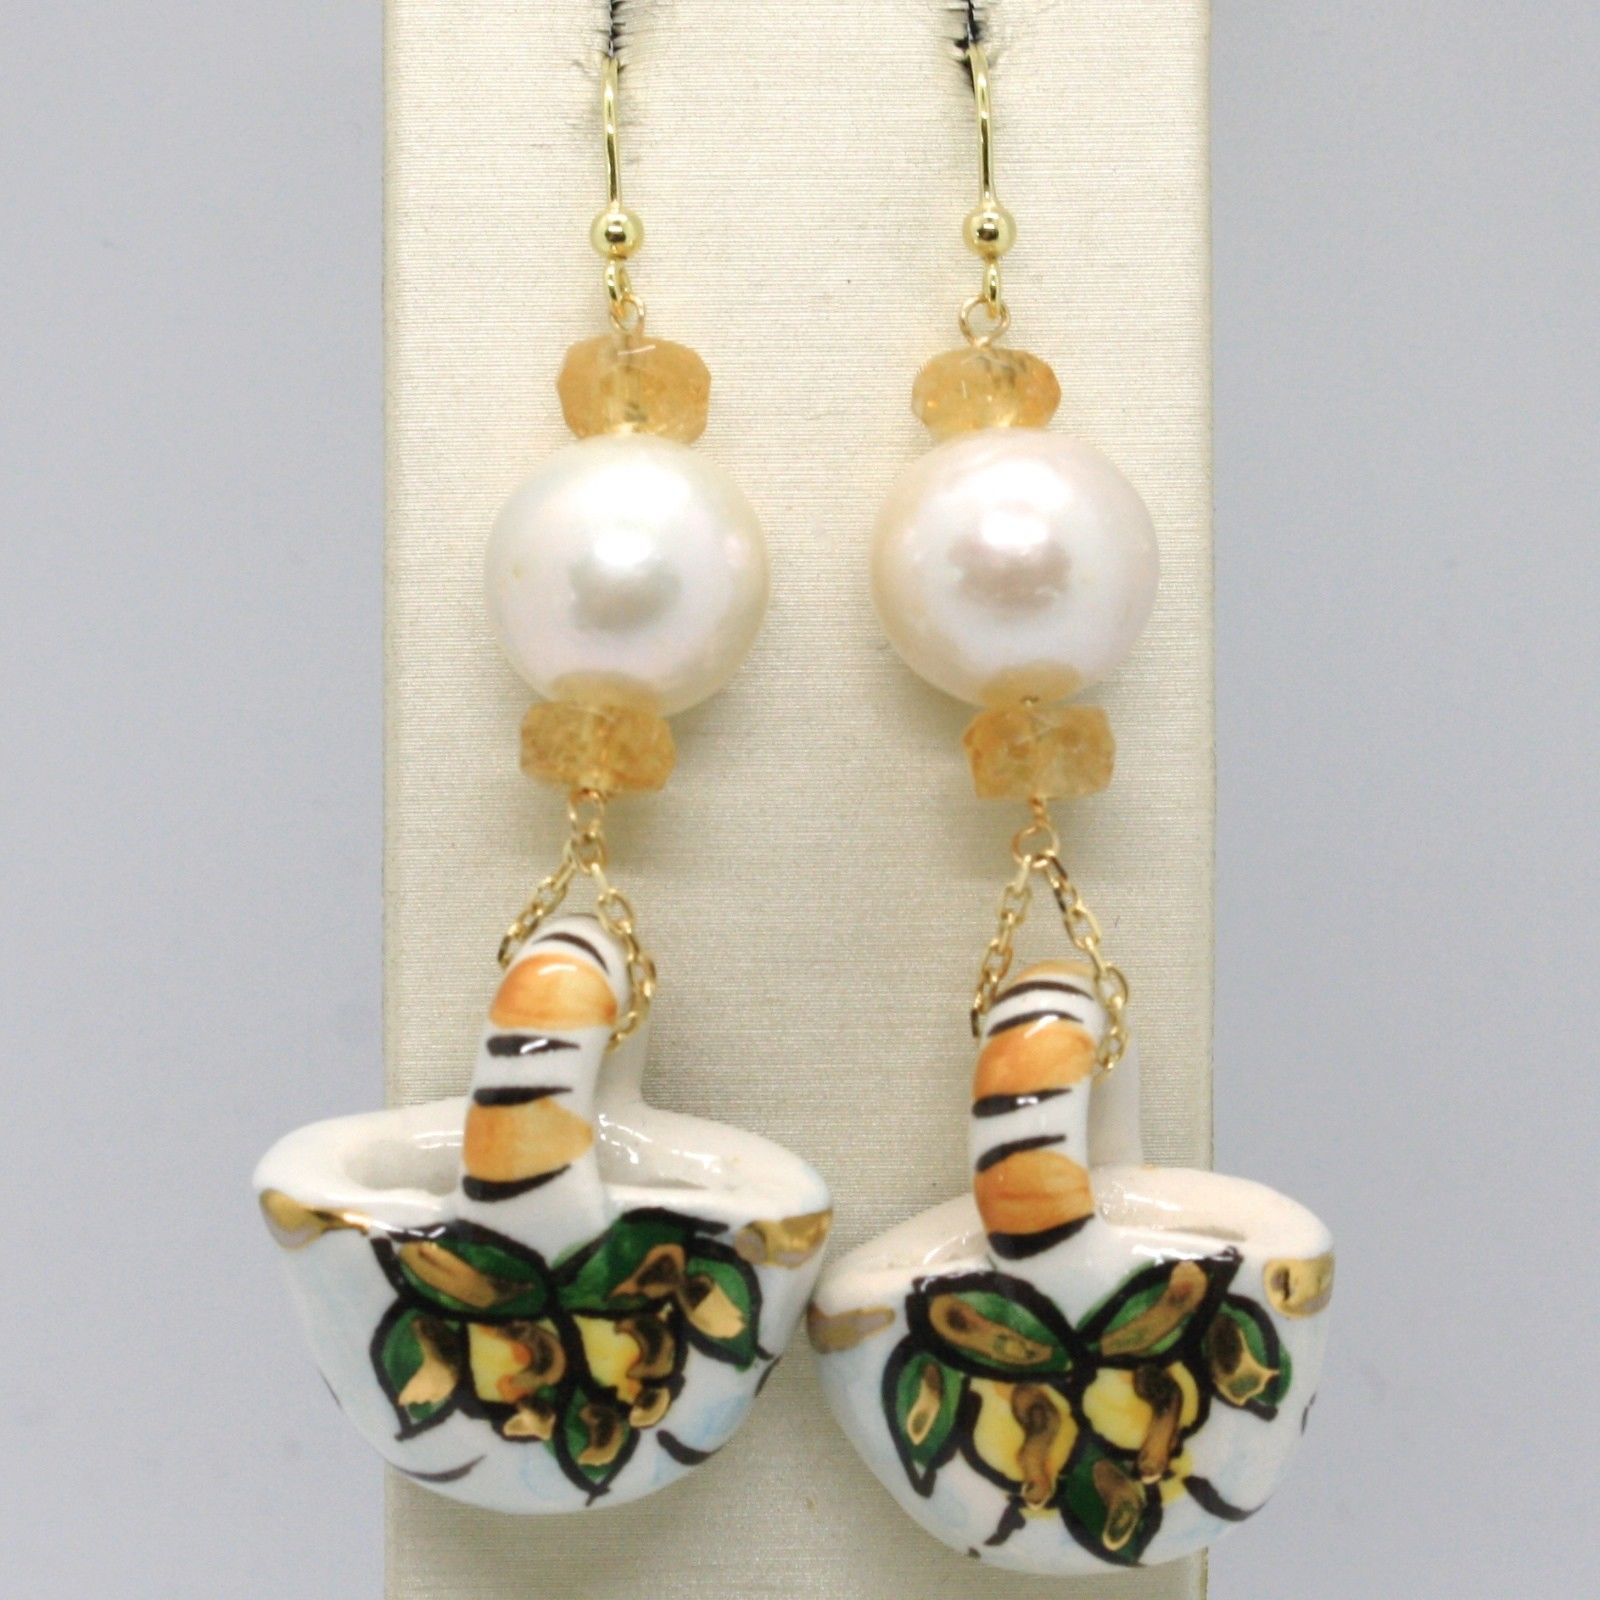 18K YELLOW GOLD EARRINGS CITRINE PEARL & CERAMIC LEMON BAG HAND PAINTED IN ITALY